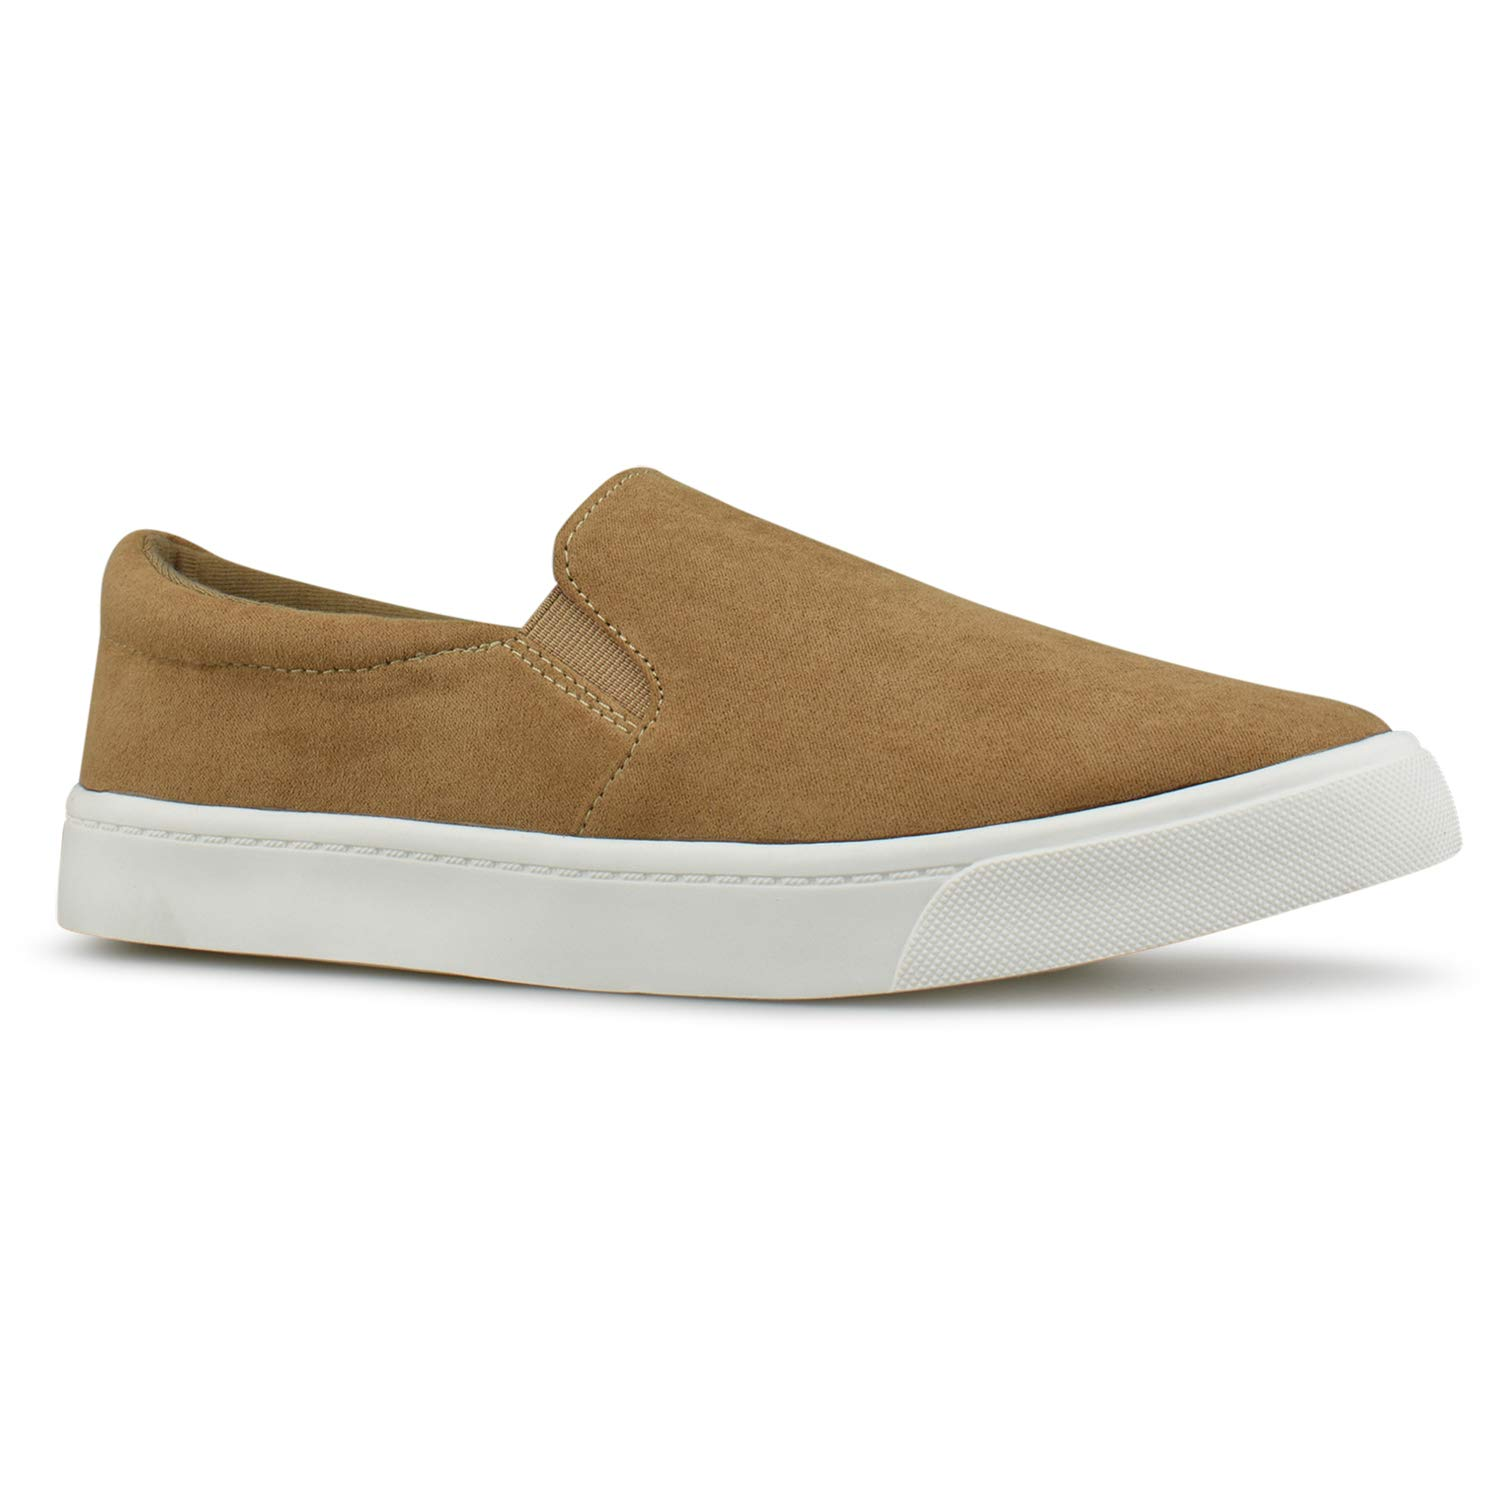 Camel R Premier Standard Women's Casual Walking shoes - Easy Everyday Fashion Slip on